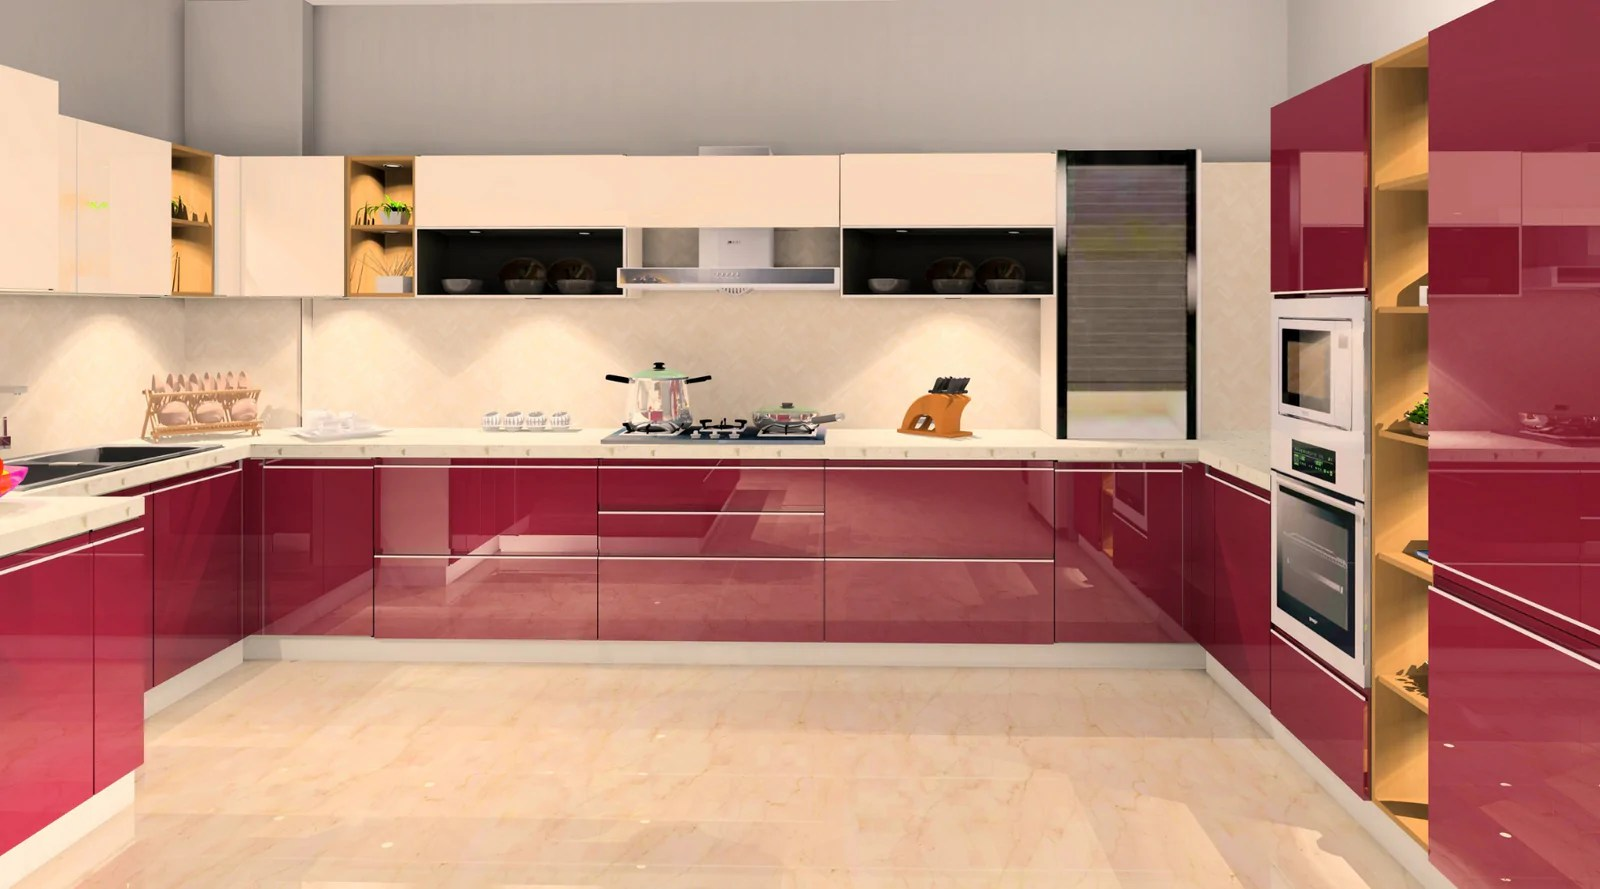 Updated List Of Kitchen Design Blogs And Sites That Accept Guest Posts Wowitloveithaveit